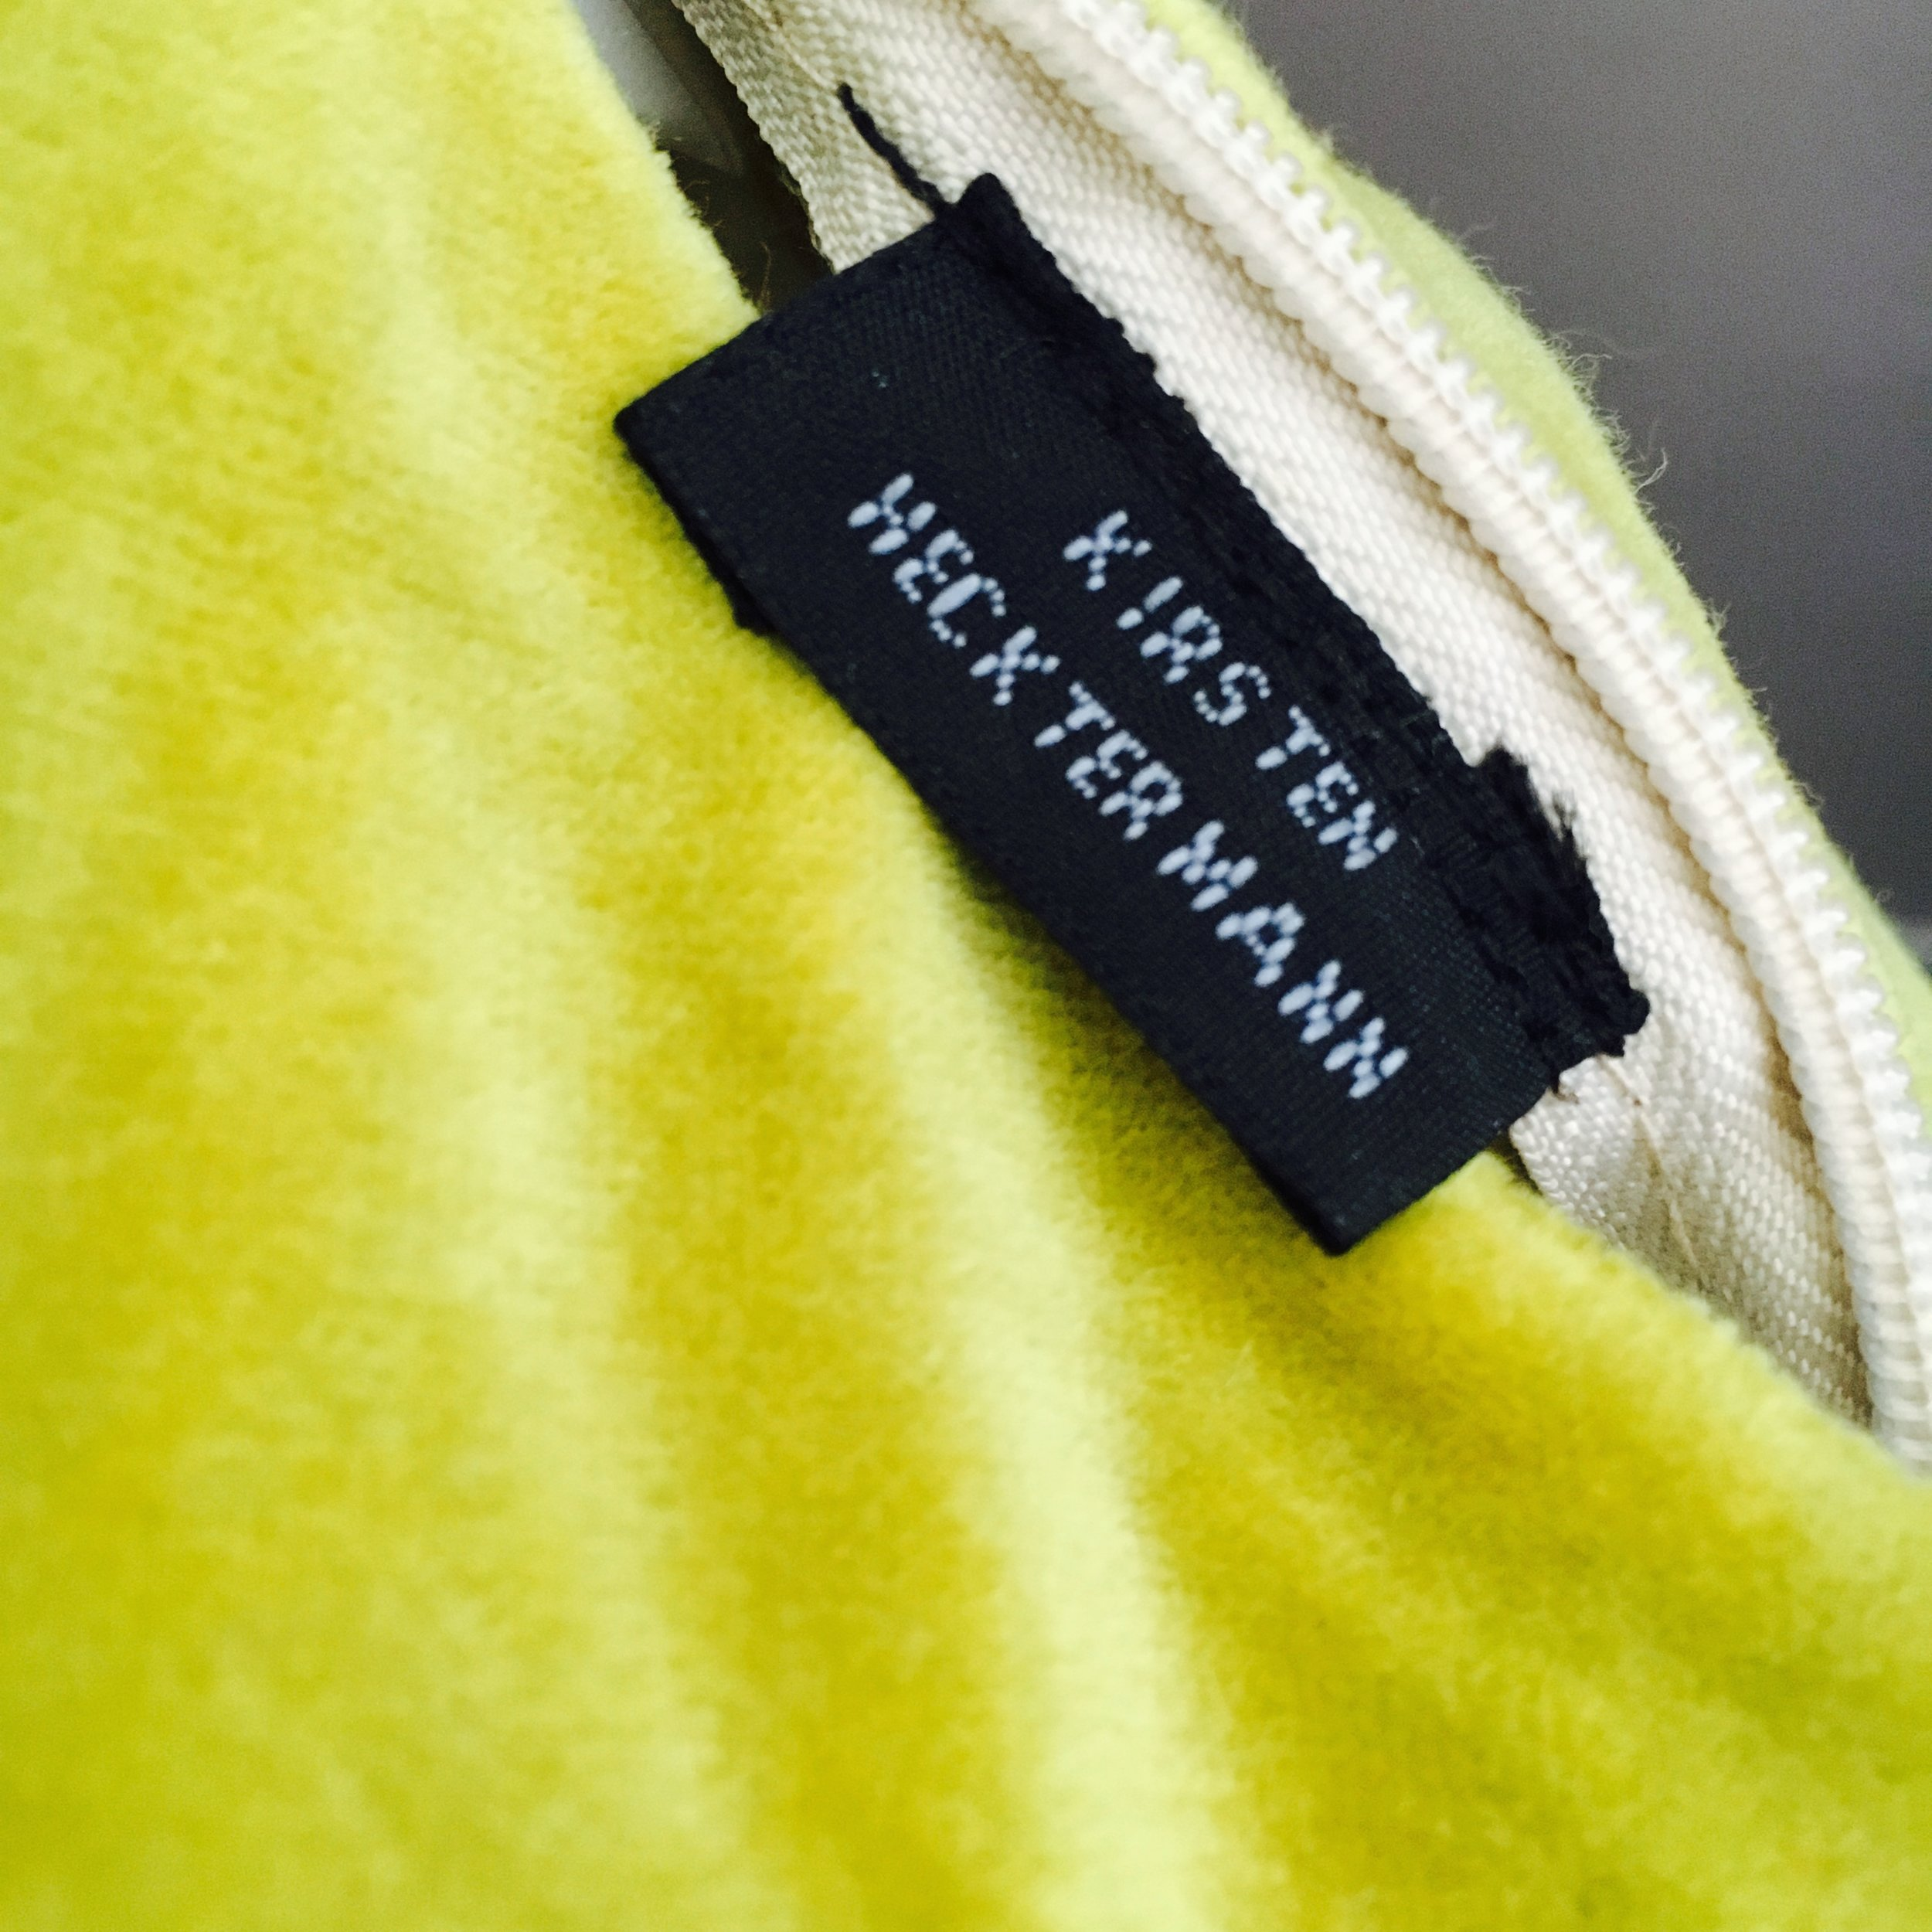 The ultimate labelling for no-logo fans: neatly tucked within the zip enclosure